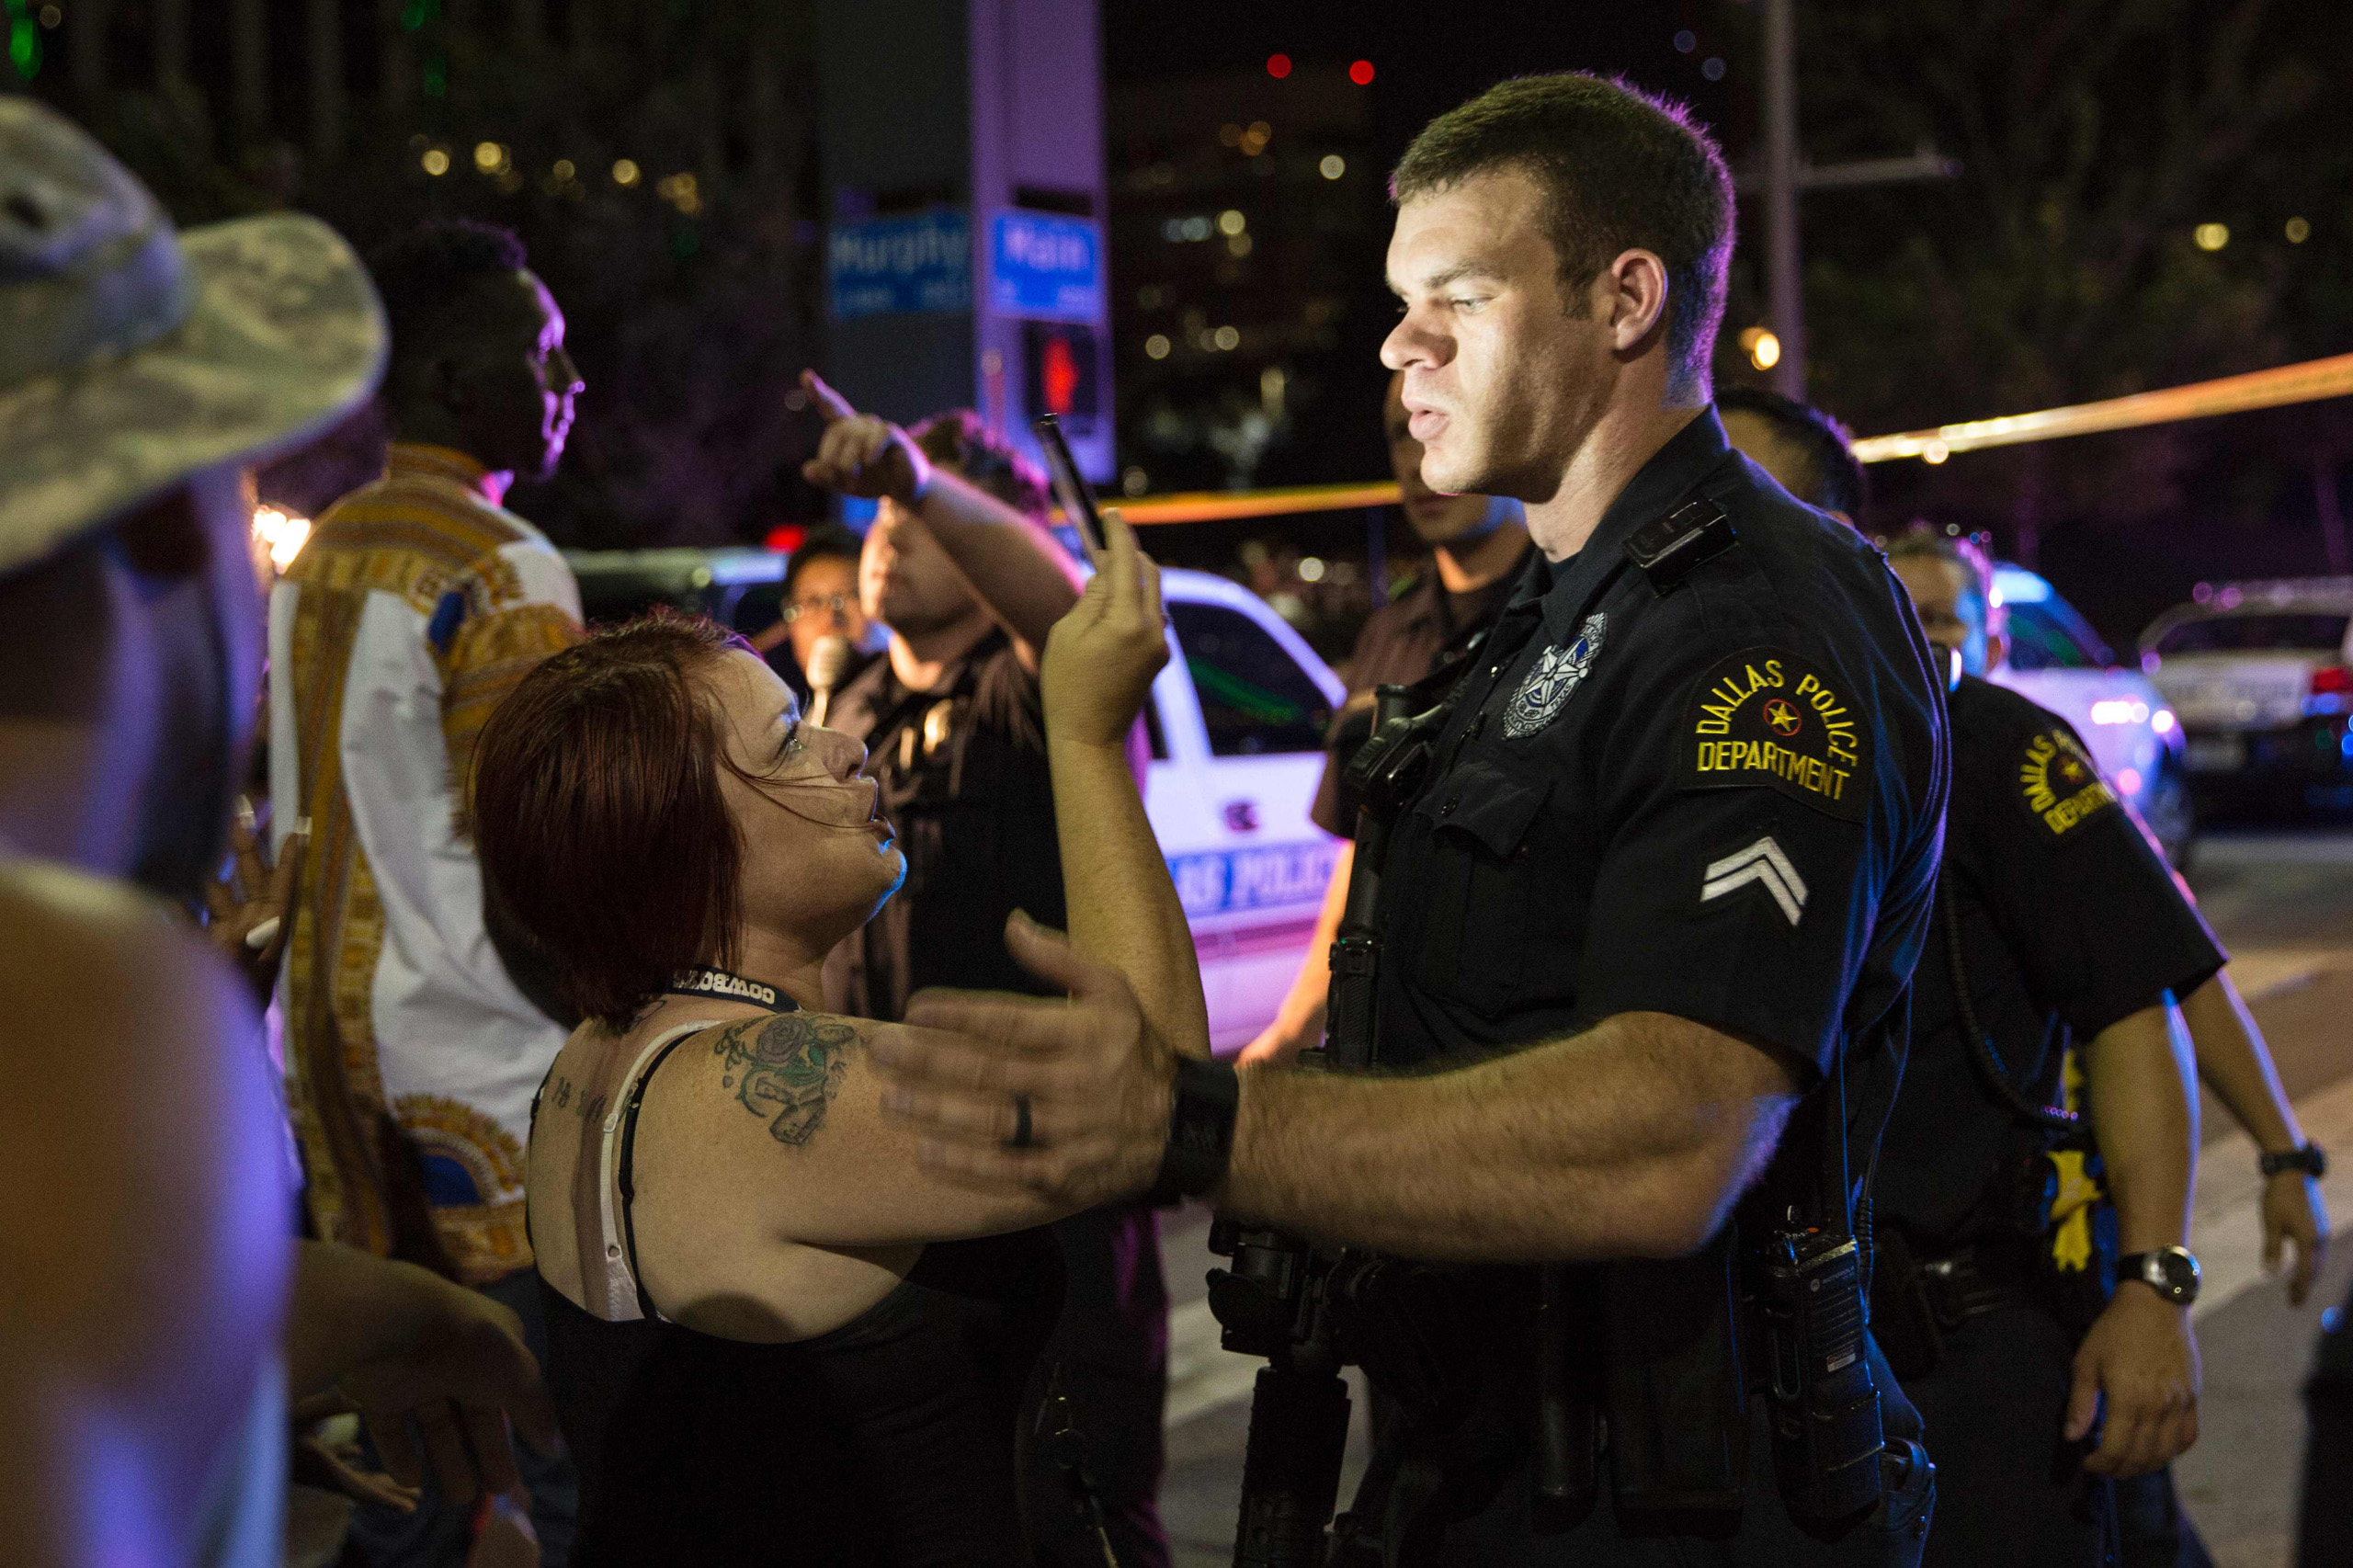 Police attempt to calm the crowd as an arrest is made following a sniper shooting in Dallas on July 7, 2016.